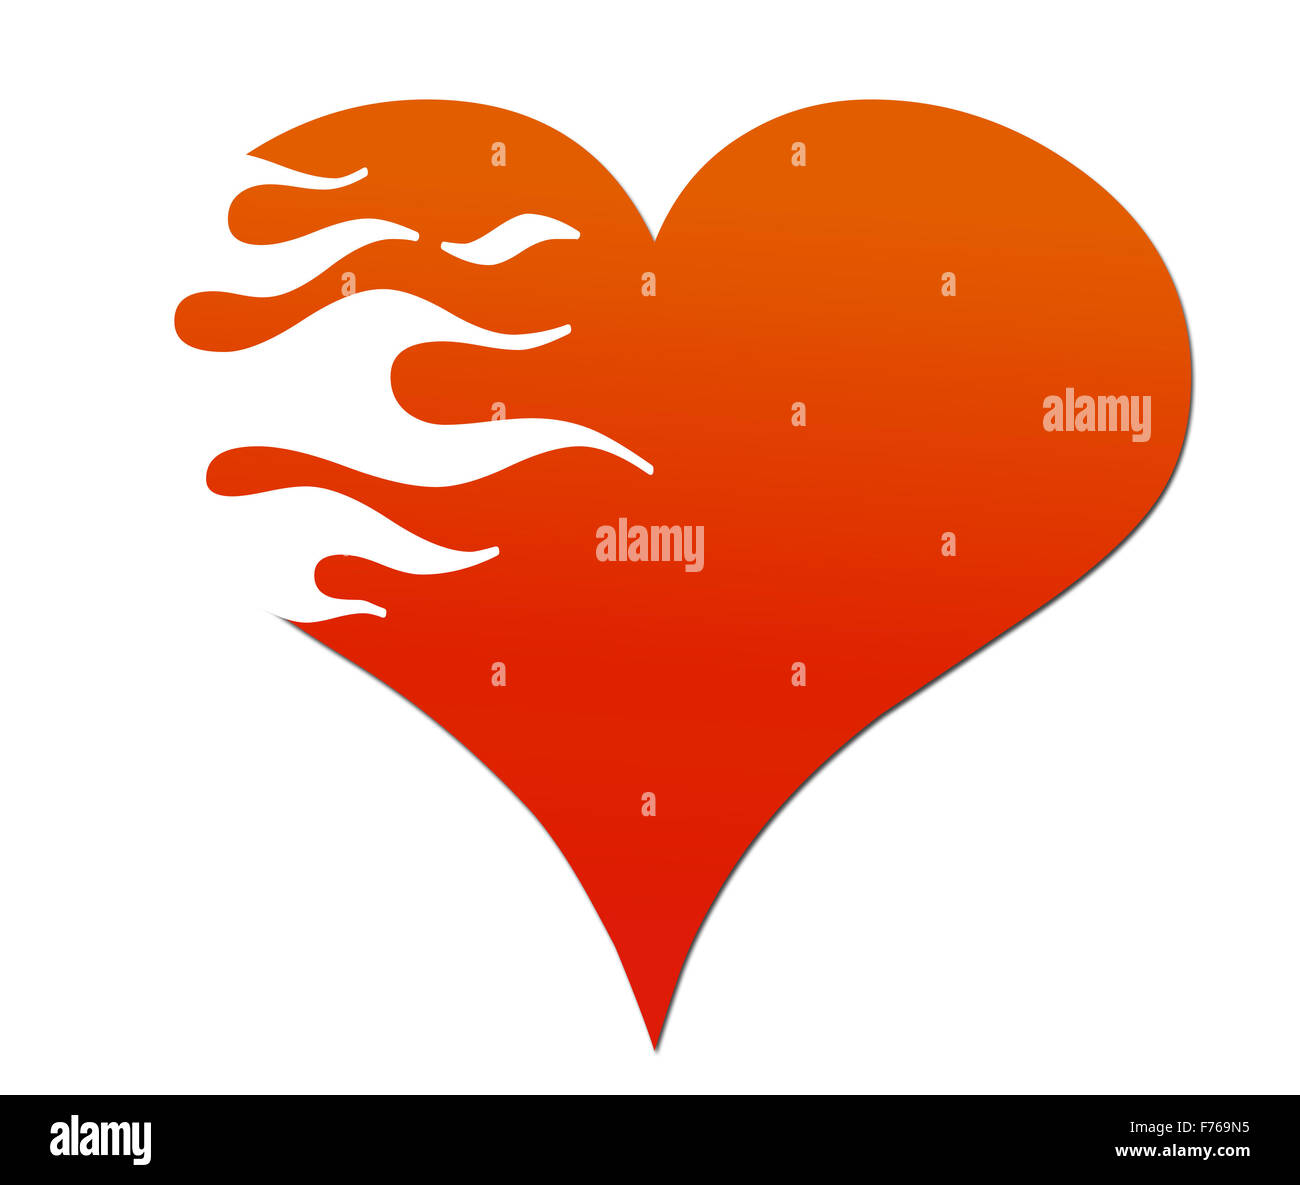 a7f516288190 Flaming Heart Stock Photo  90493793 - Alamy